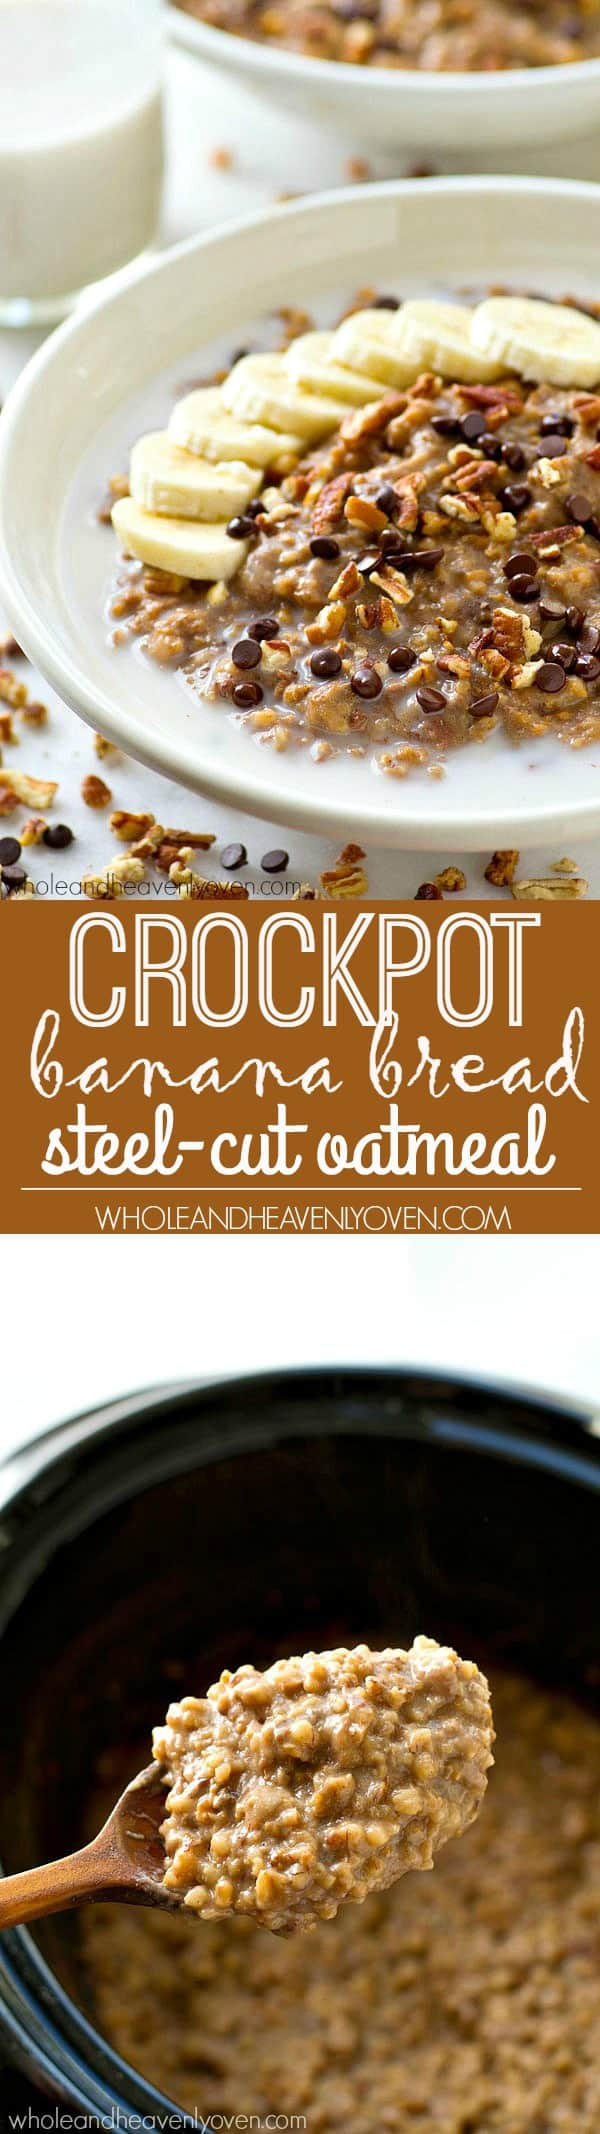 Creamy homemade steel-cut oatmeal that cooks low 'n' slow for hours in the crockpot and loaded with banana bread flavors! The best way to start the day.